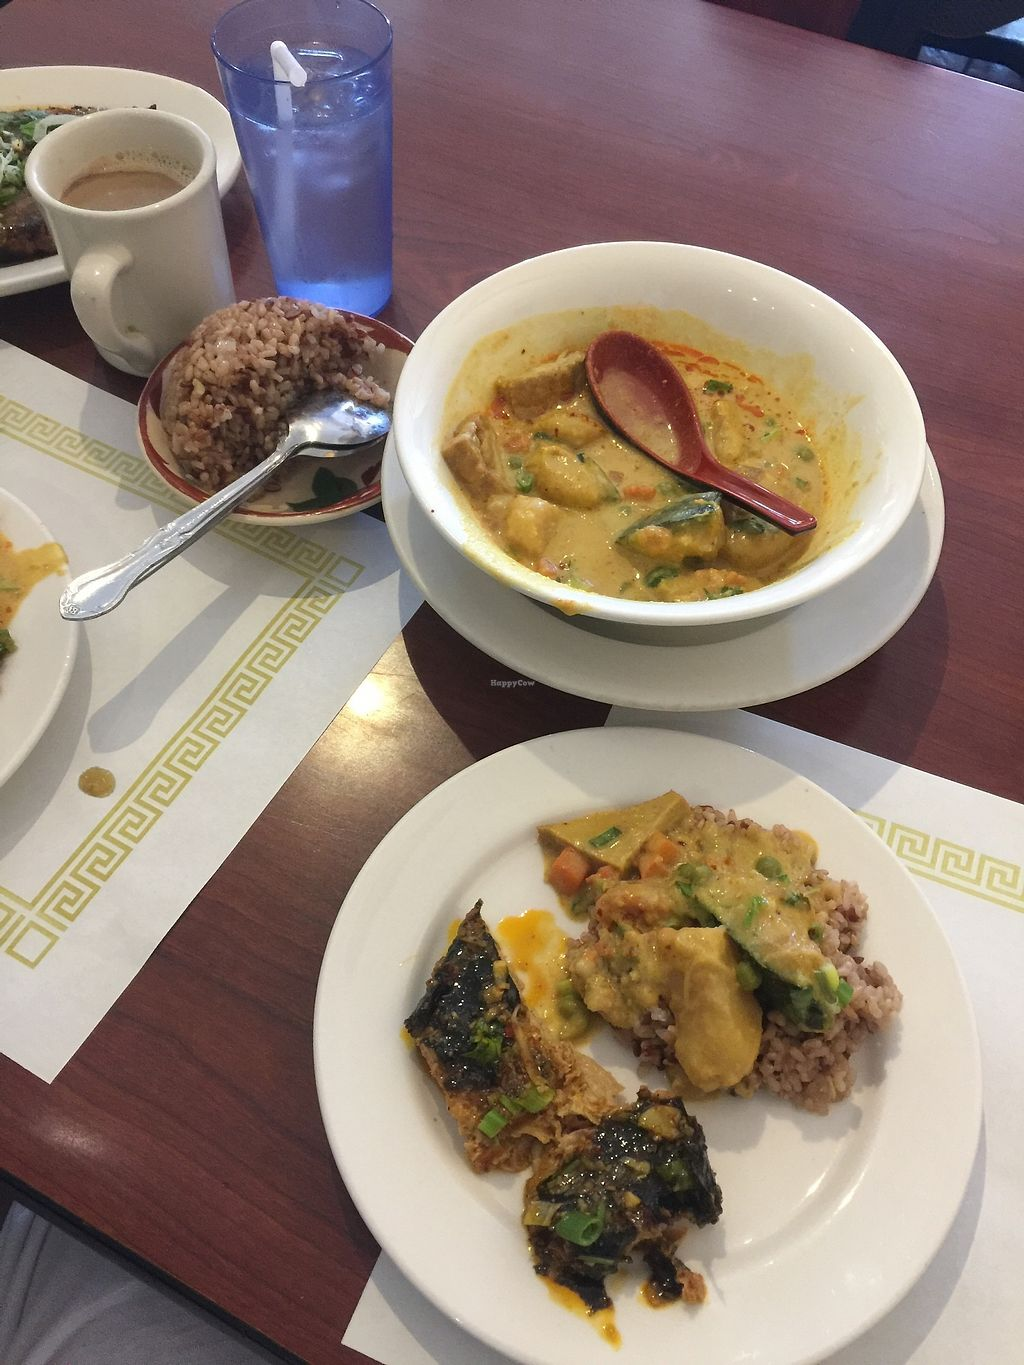 """Photo of Thuyen Vien  by <a href=""""/members/profile/vegansuncake"""">vegansuncake</a> <br/>Yes, the crispy fish actually is good and not too rubbery like many vegan fish. Wonderful flavor.  The pumpkin curry was also lovely <br/> January 13, 2018  - <a href='/contact/abuse/image/23785/346008'>Report</a>"""